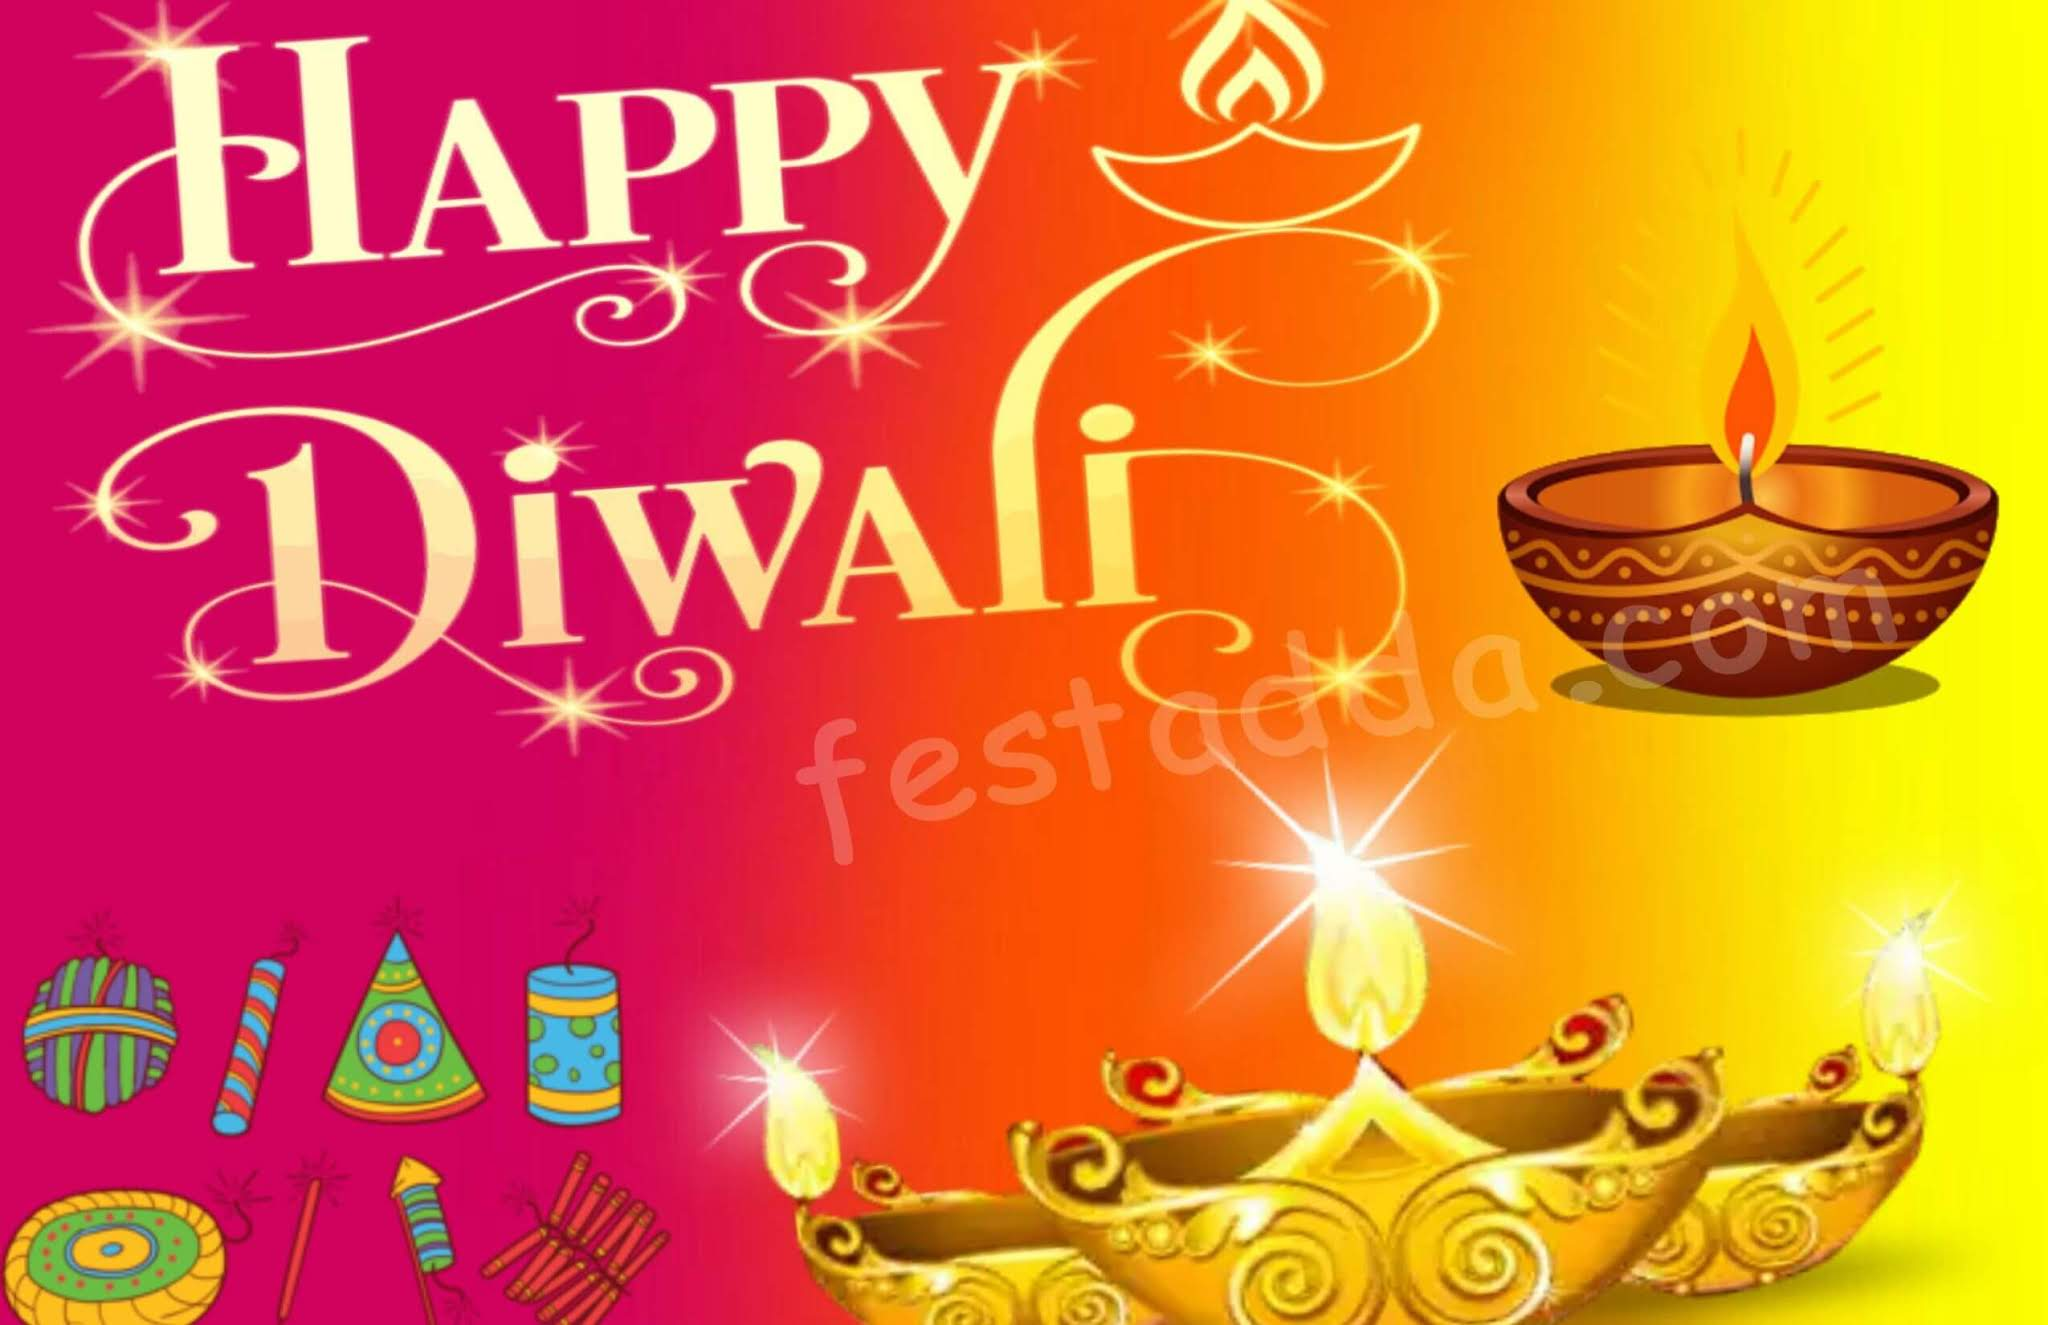 Happy Diwali and Happy New Year wishes Messages Image_uptodatedaily